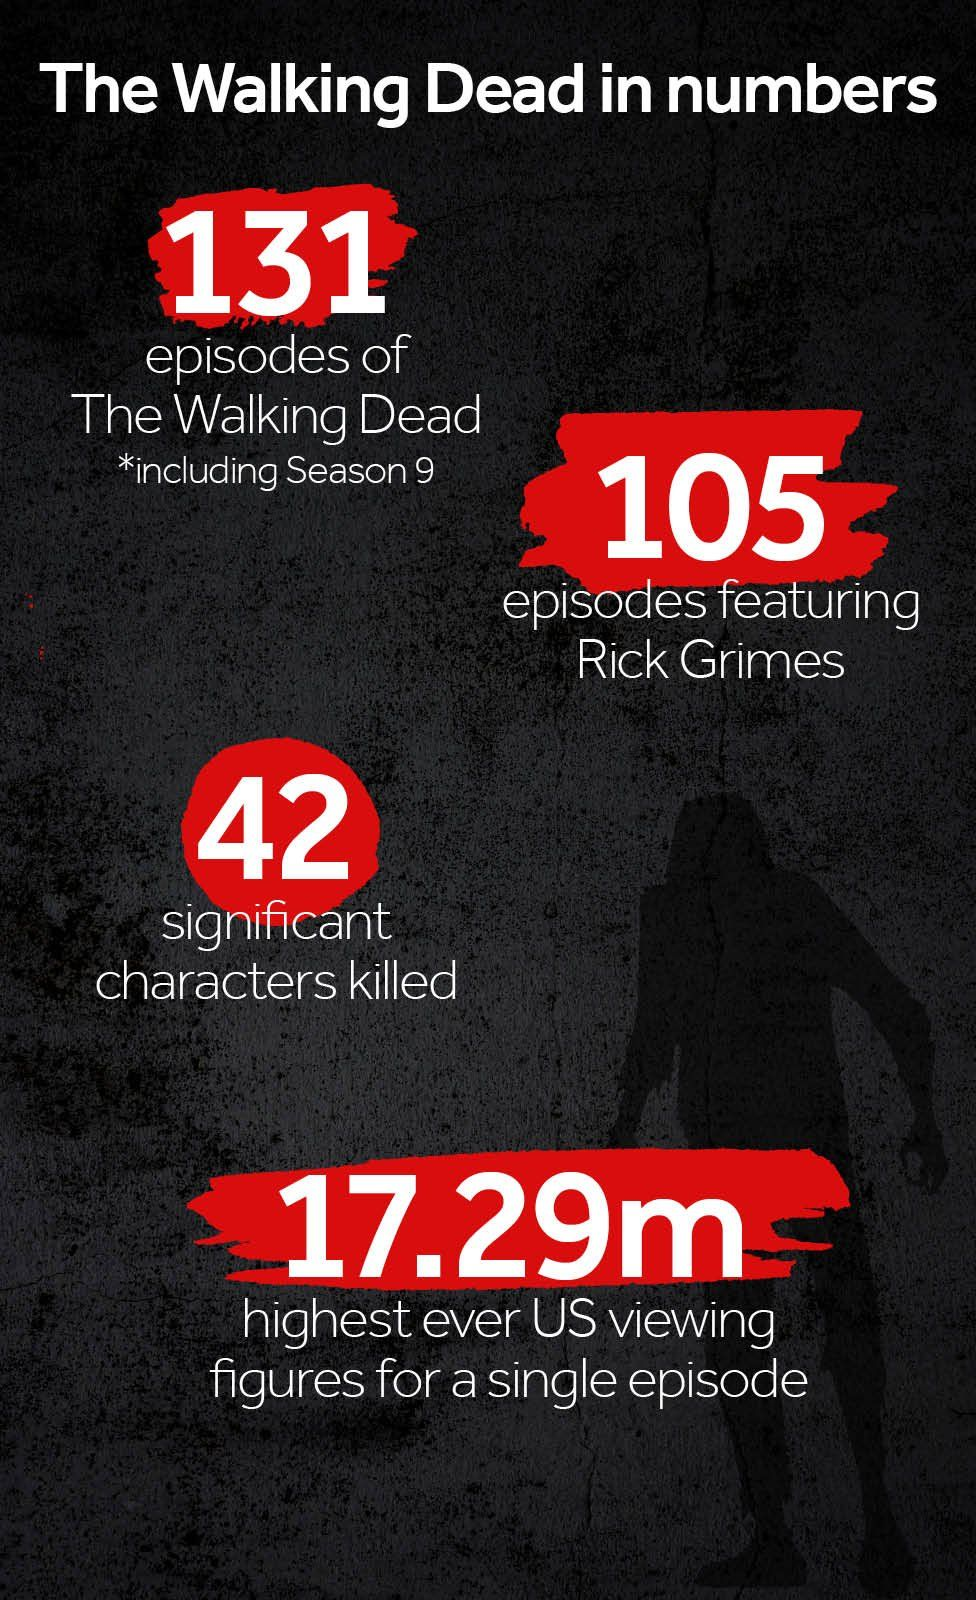 The Walking Dead in numbers. 131 episodes. 105 featuring Rick Grimes. 42 significant characters killed. 17.29 million viewers, it's highest ever single episode viewing figures in the US.